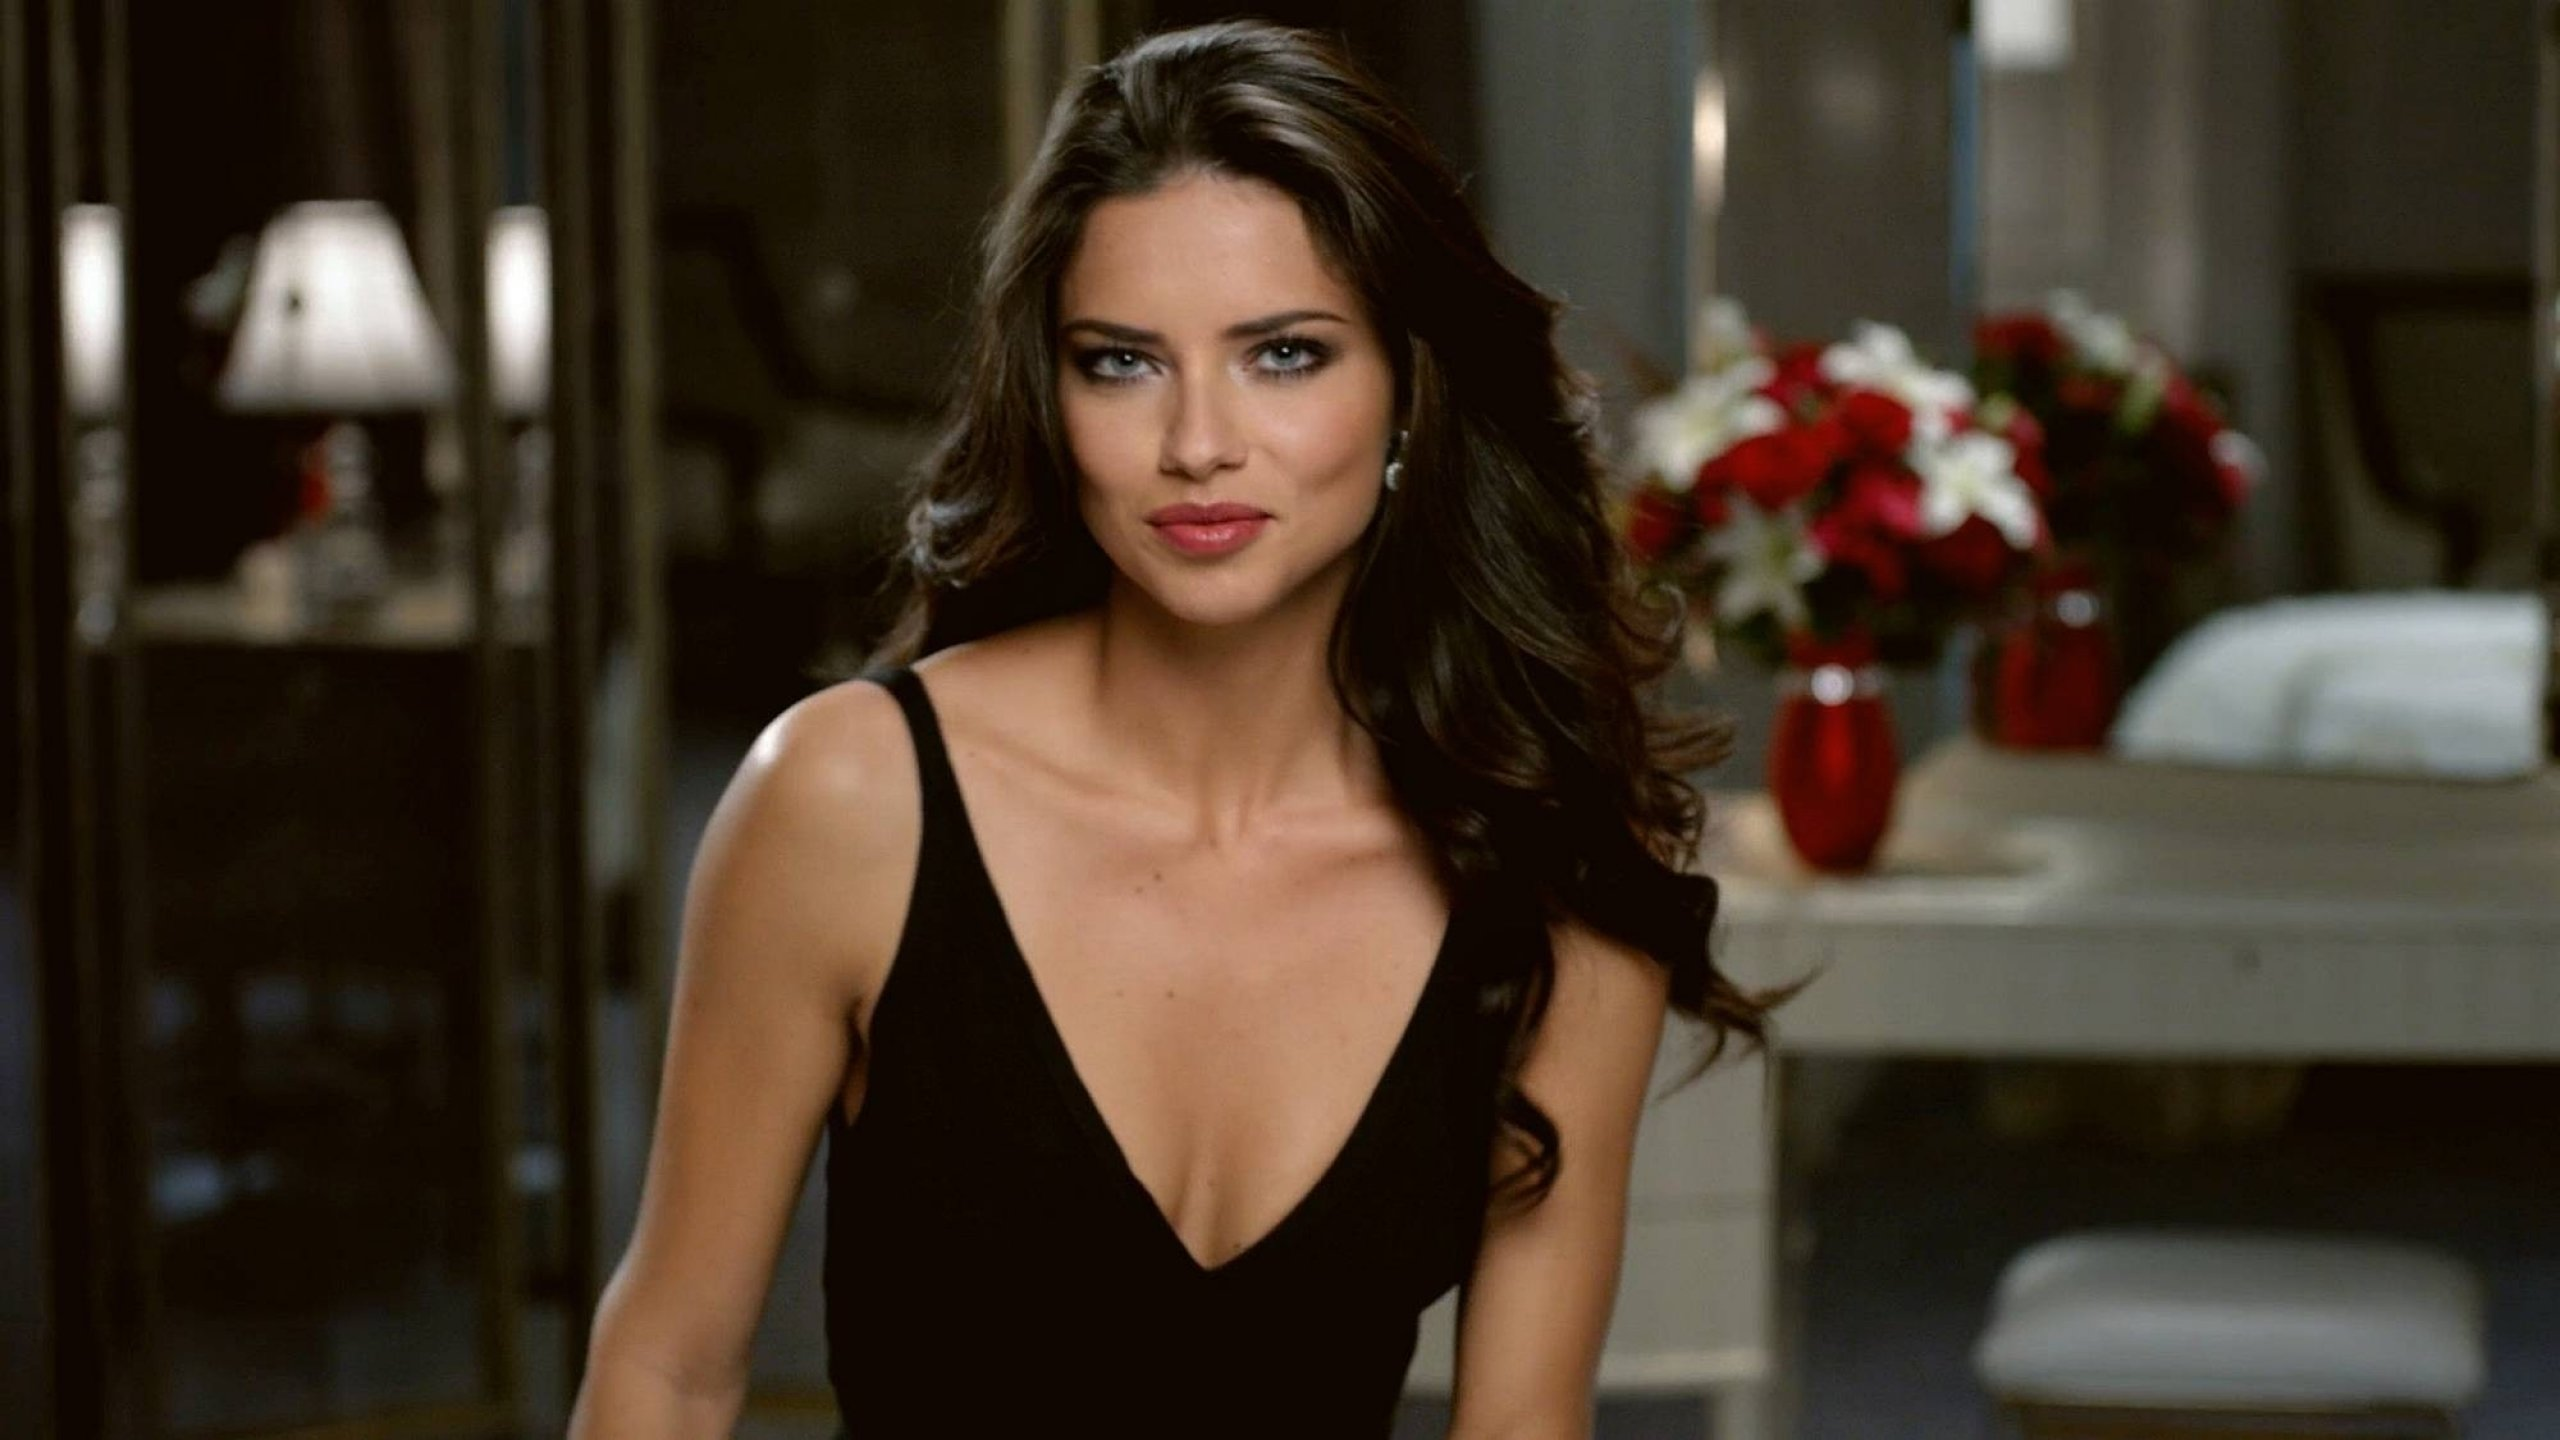 Free Download Adriana Lima Wallpaper ID334029 Hd 2560x1440 For Computer